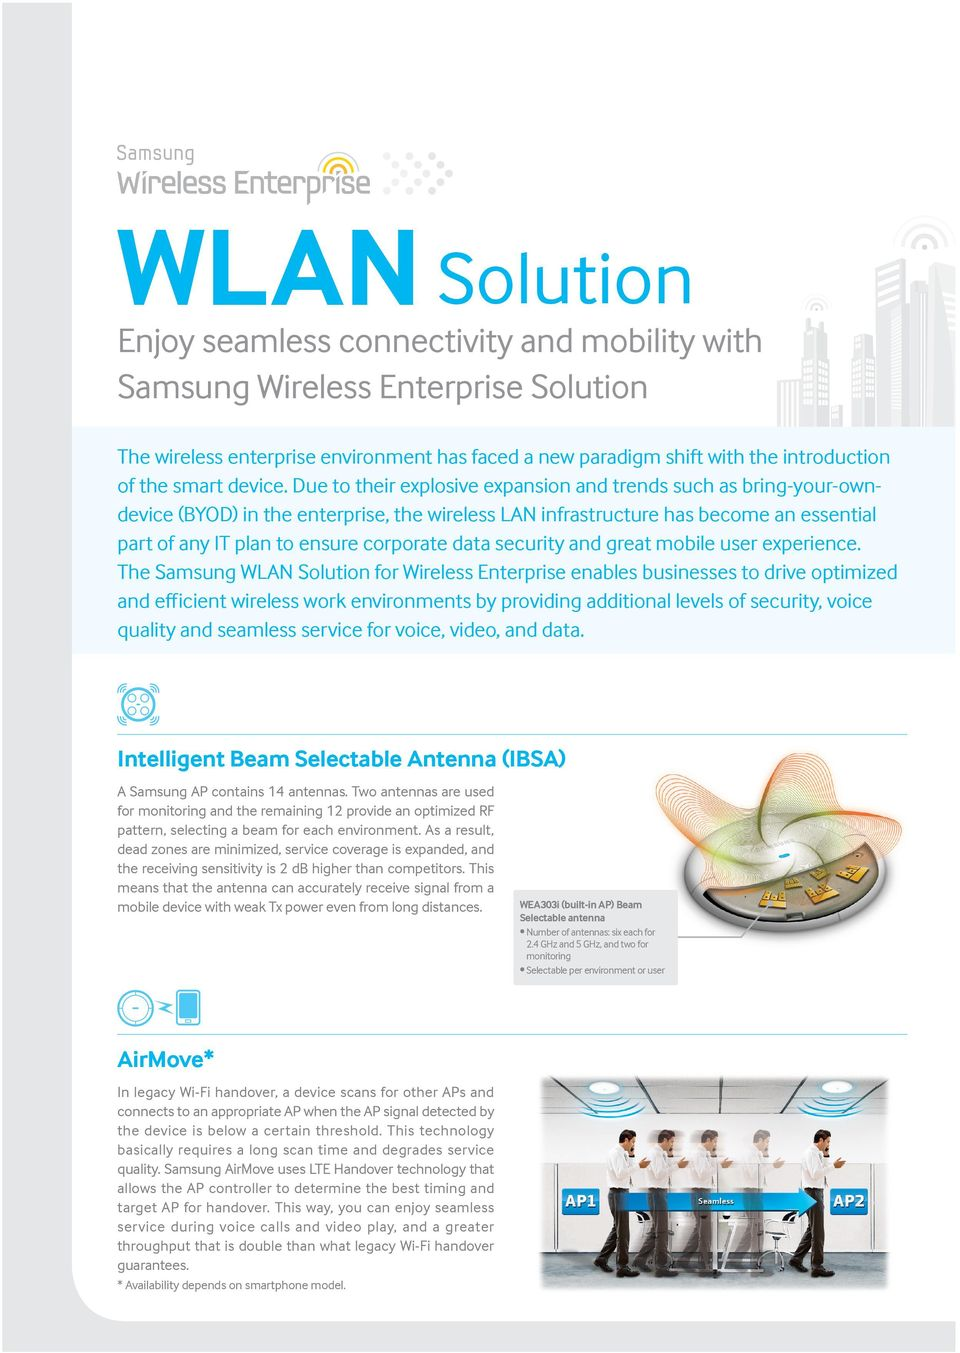 Due to their explosive expansion and trends such as bring-your-owndevice (BYOD) in the enterprise, the wireless LAN infrastructure has become an essential part of any IT plan to ensure corporate data